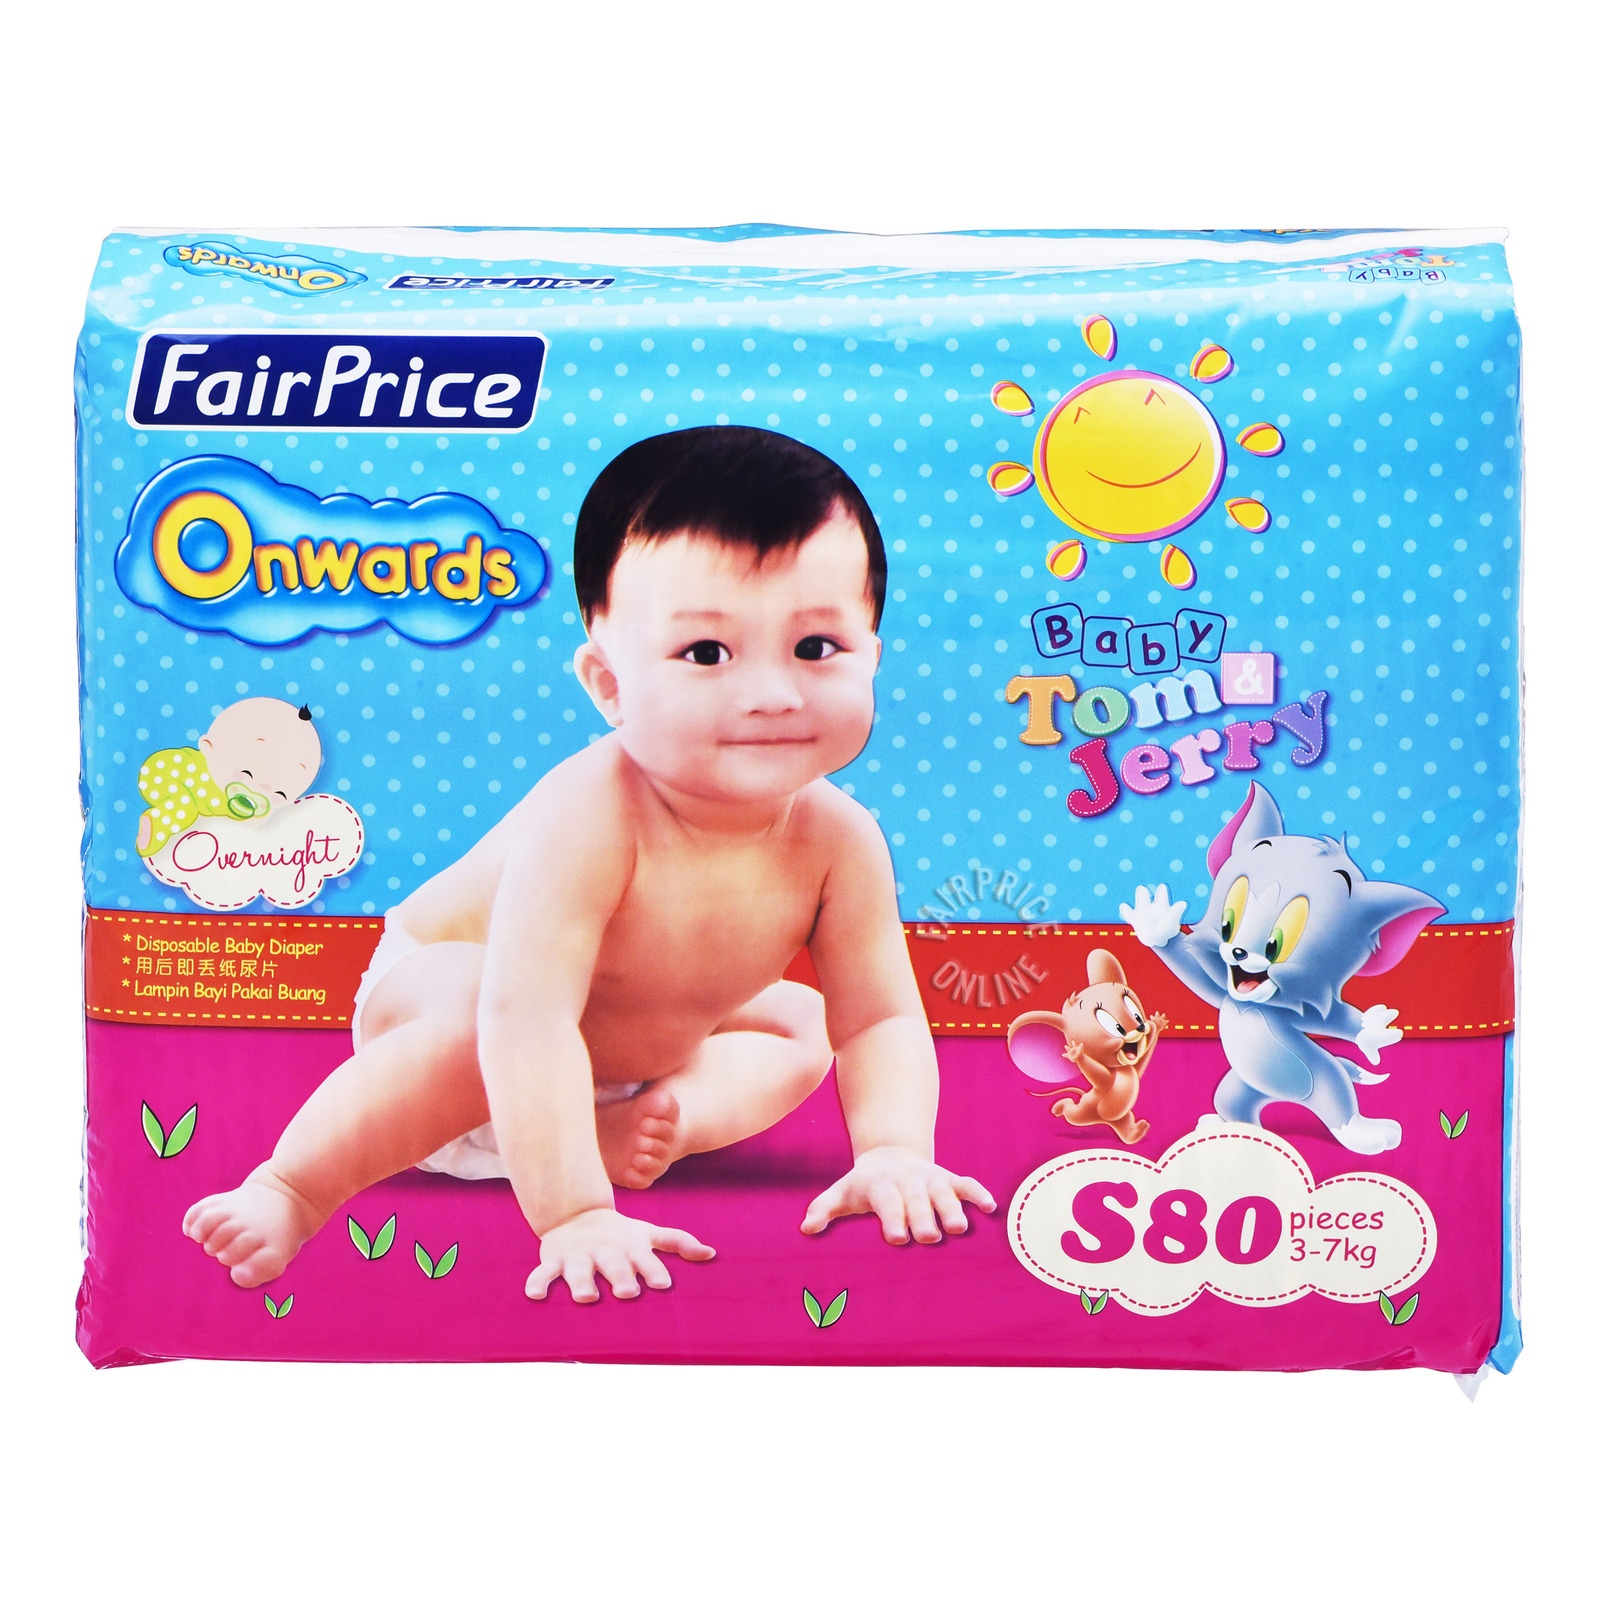 FairPrice Onwards Baby Diapers - S (3 - 7kg)